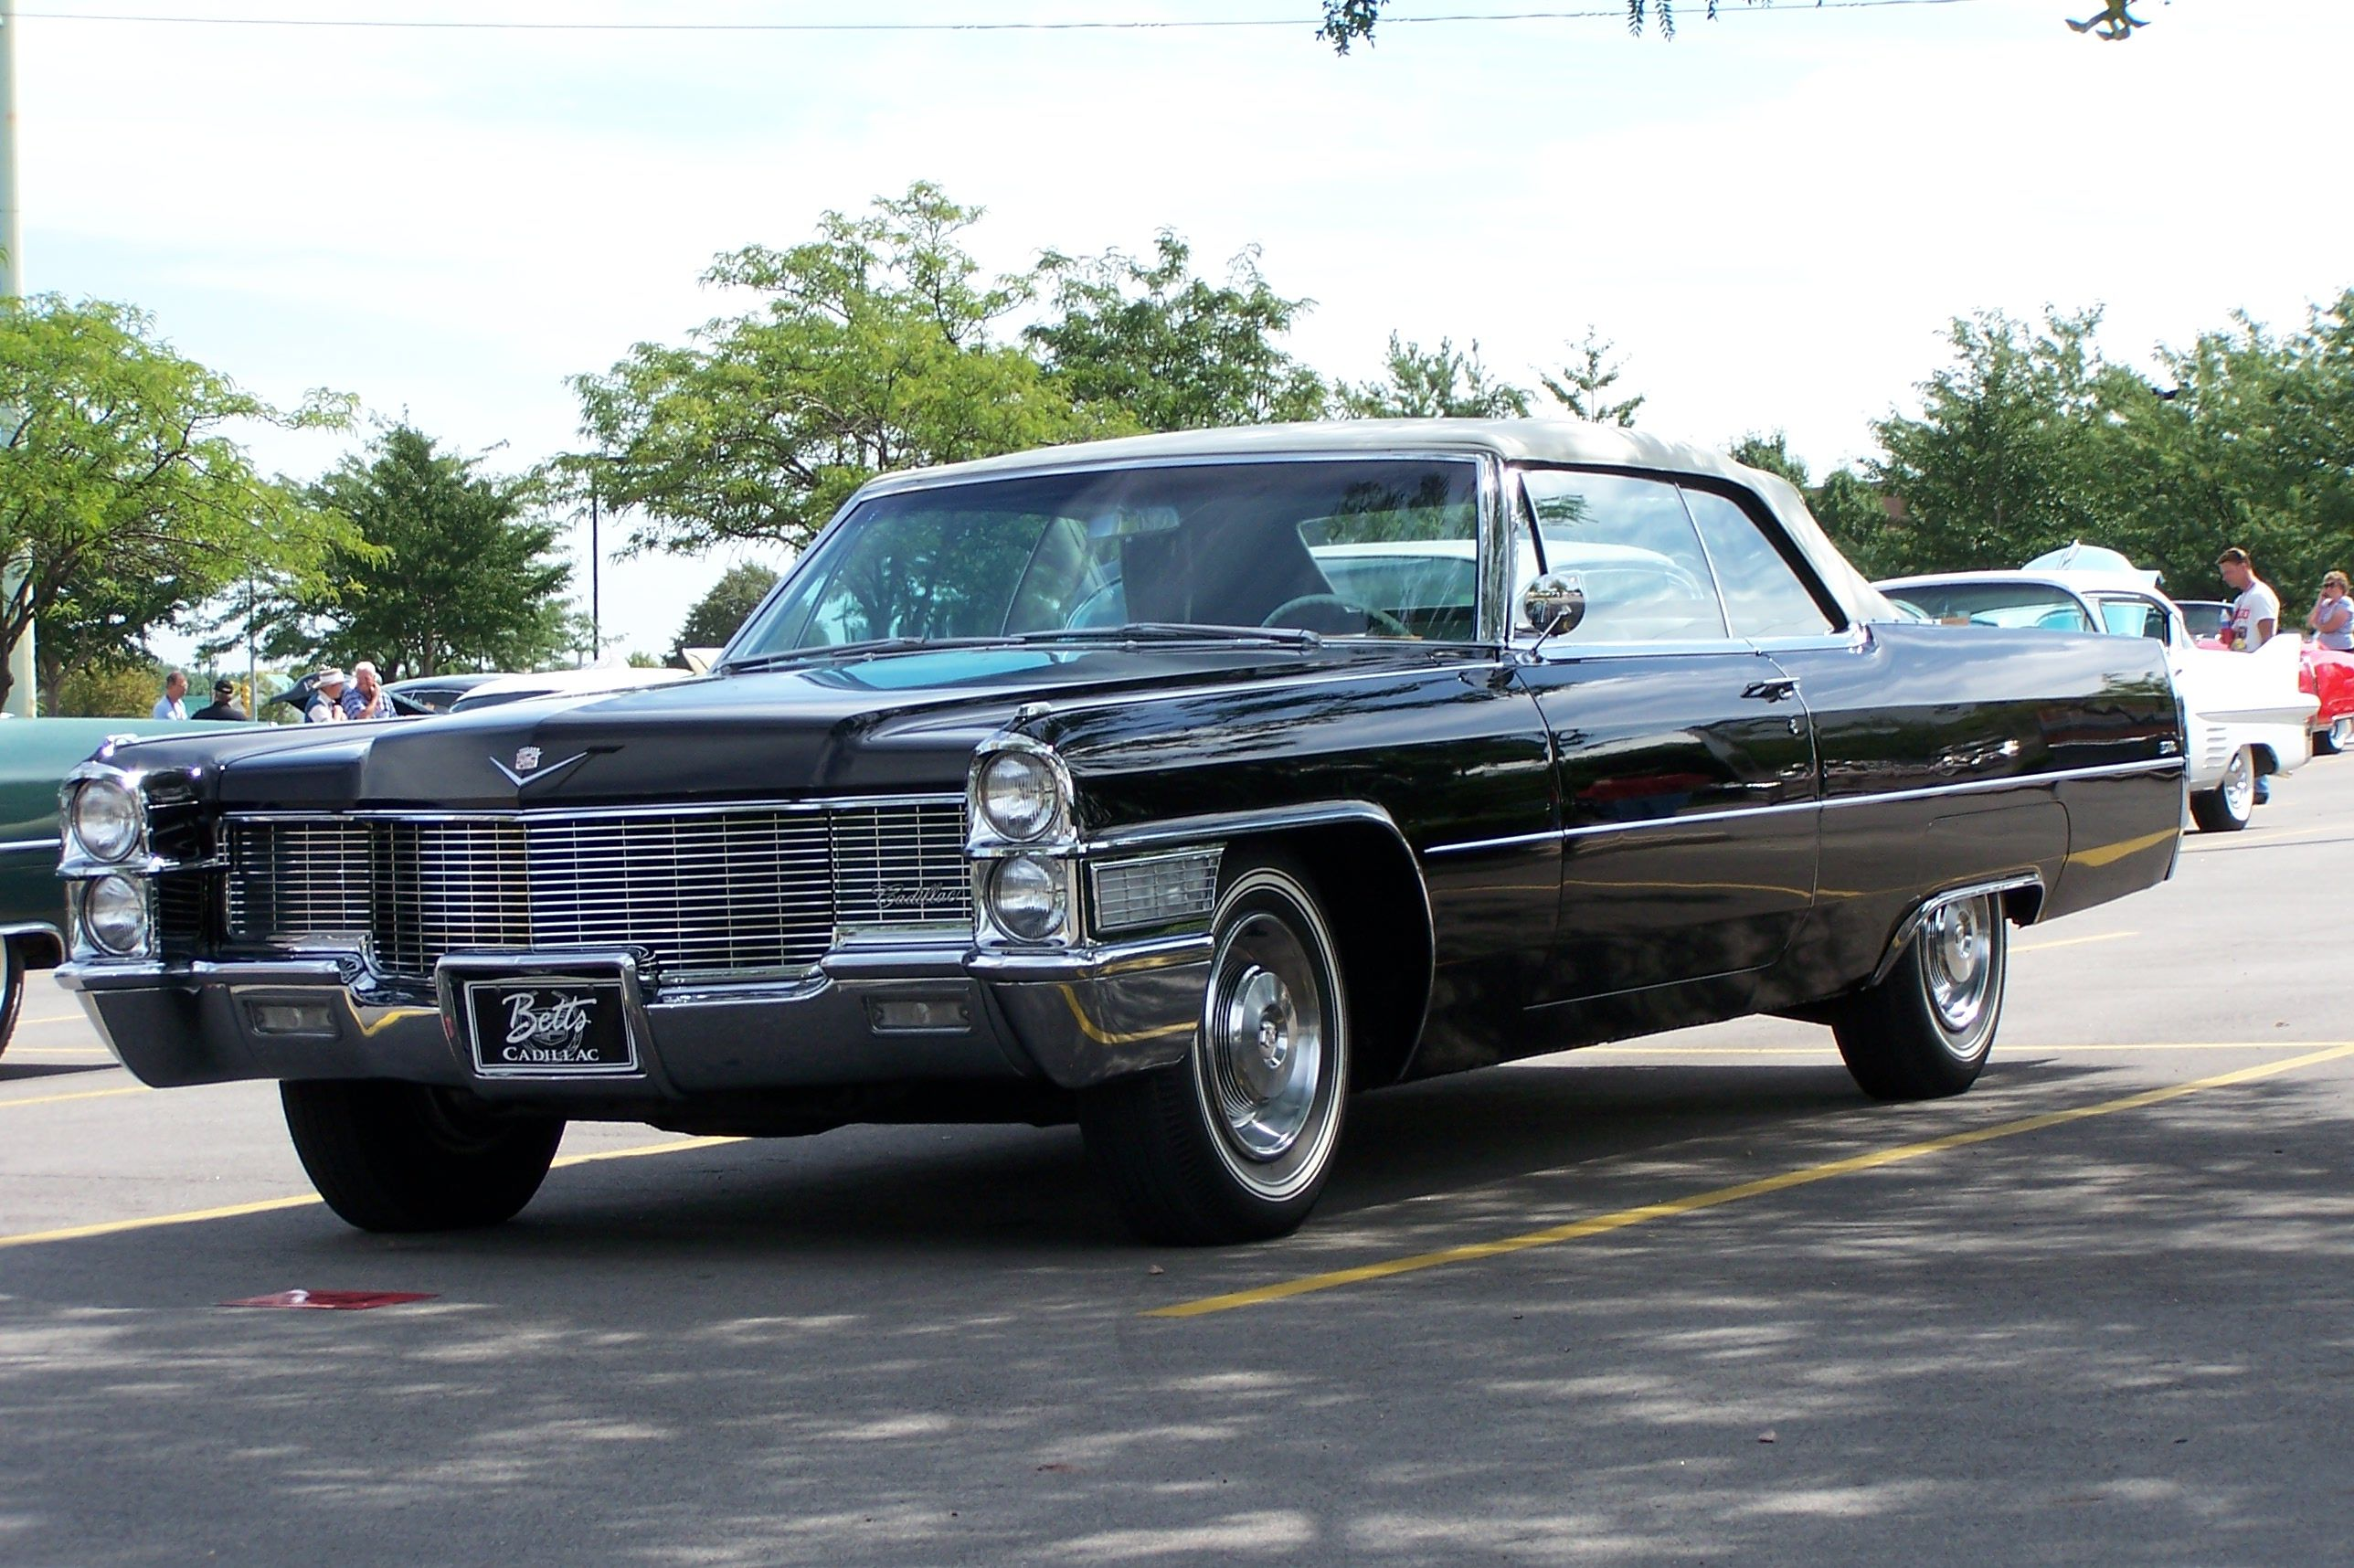 1965 cadillac coupe deville convertible cars motorcycles pinter. Cars Review. Best American Auto & Cars Review